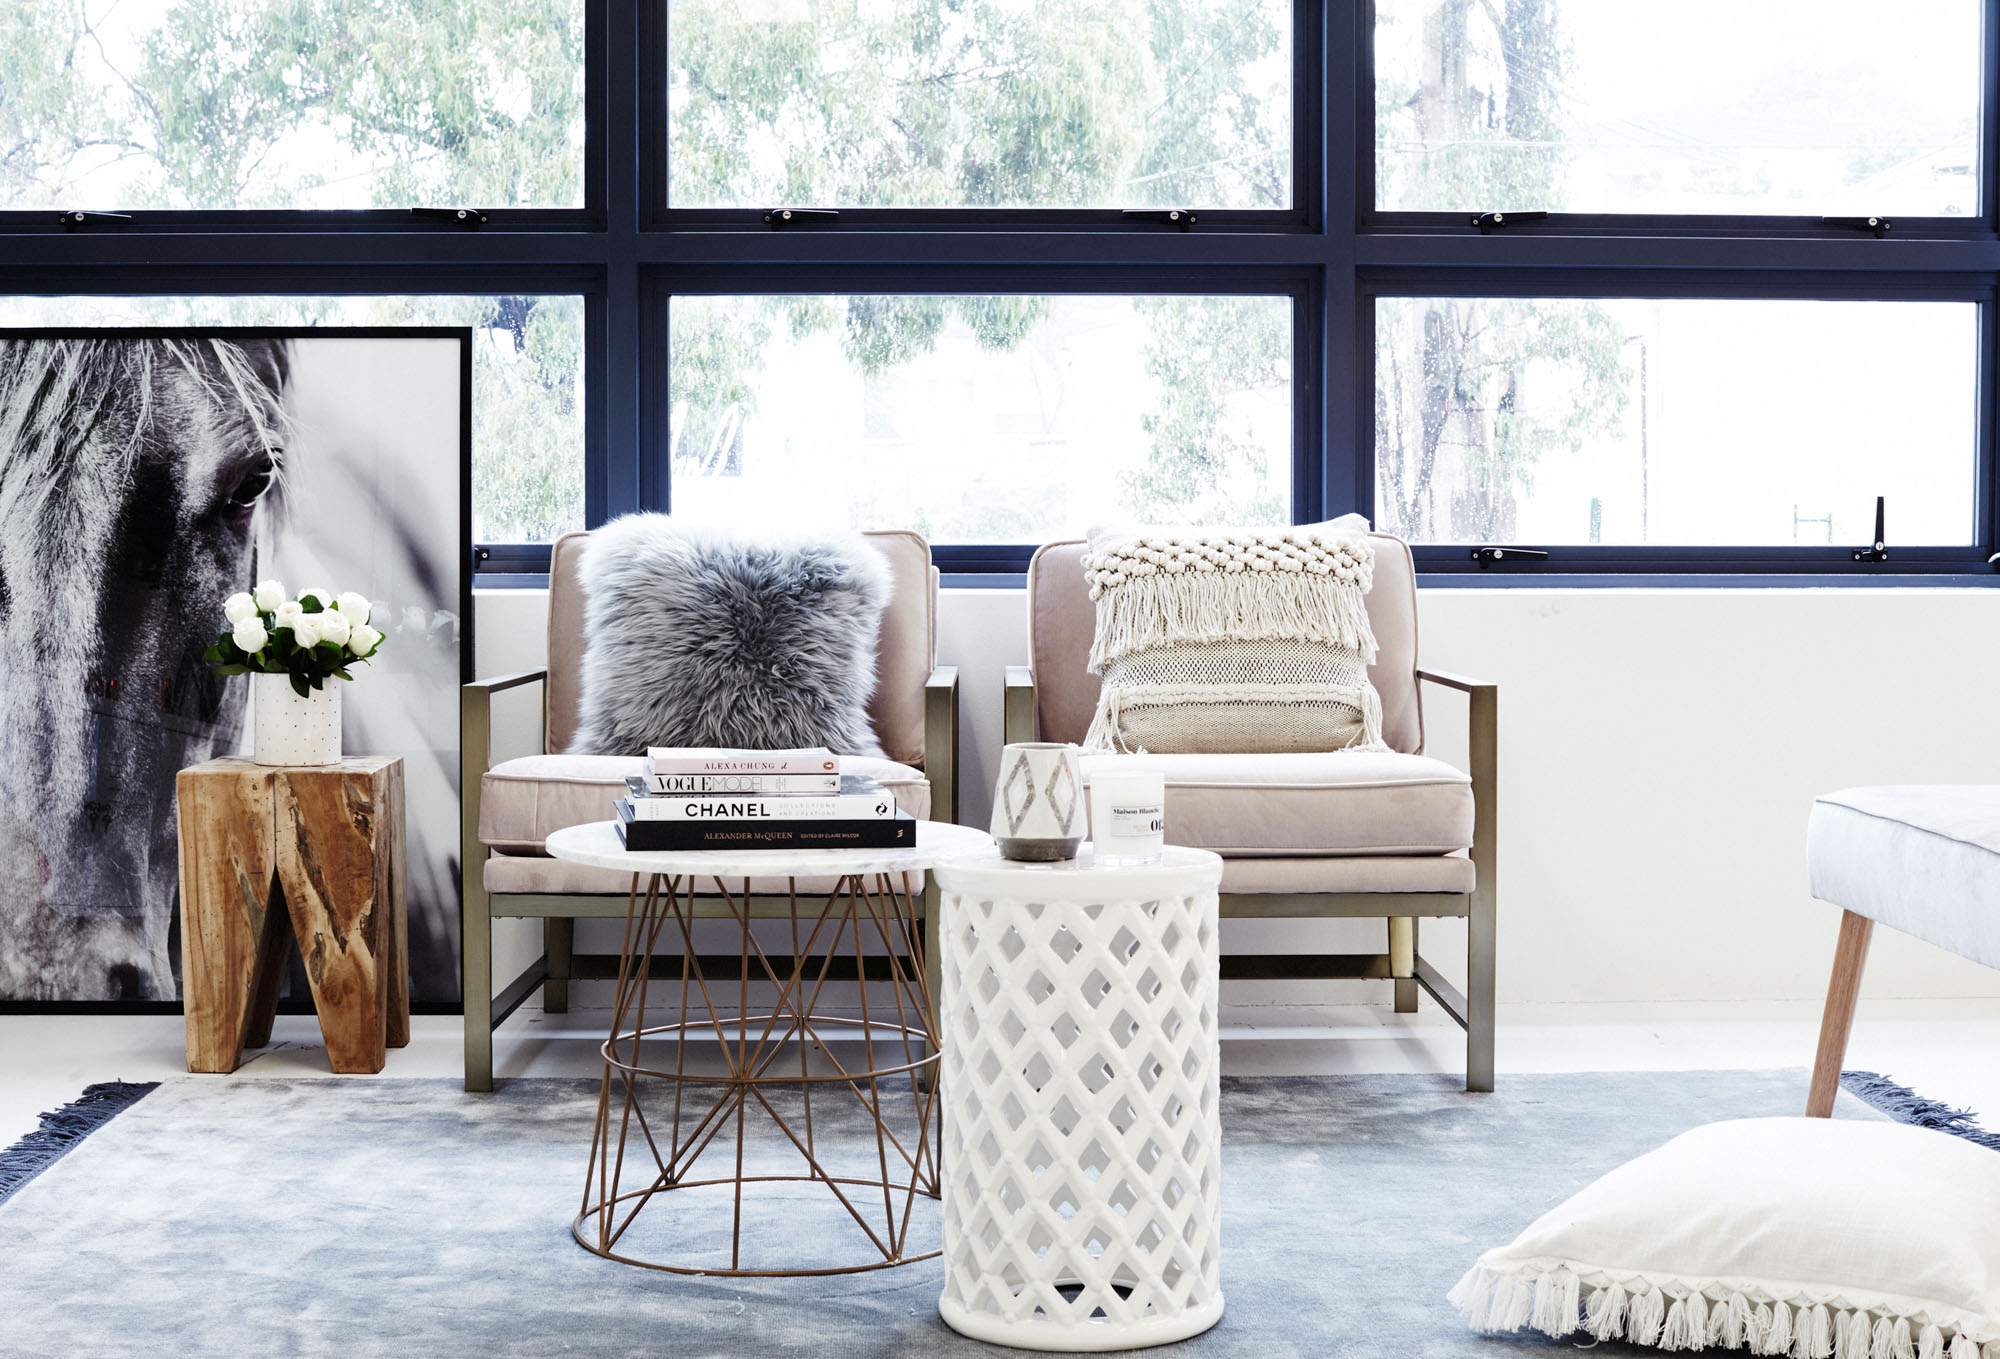 RUG - BO CONCEPT  HORSE PAINTING -  HAMPTONS AT HOME  COFFEE TABLES -  OZ DESIGN FURNITURE  CHAIRS -  WEST ELM